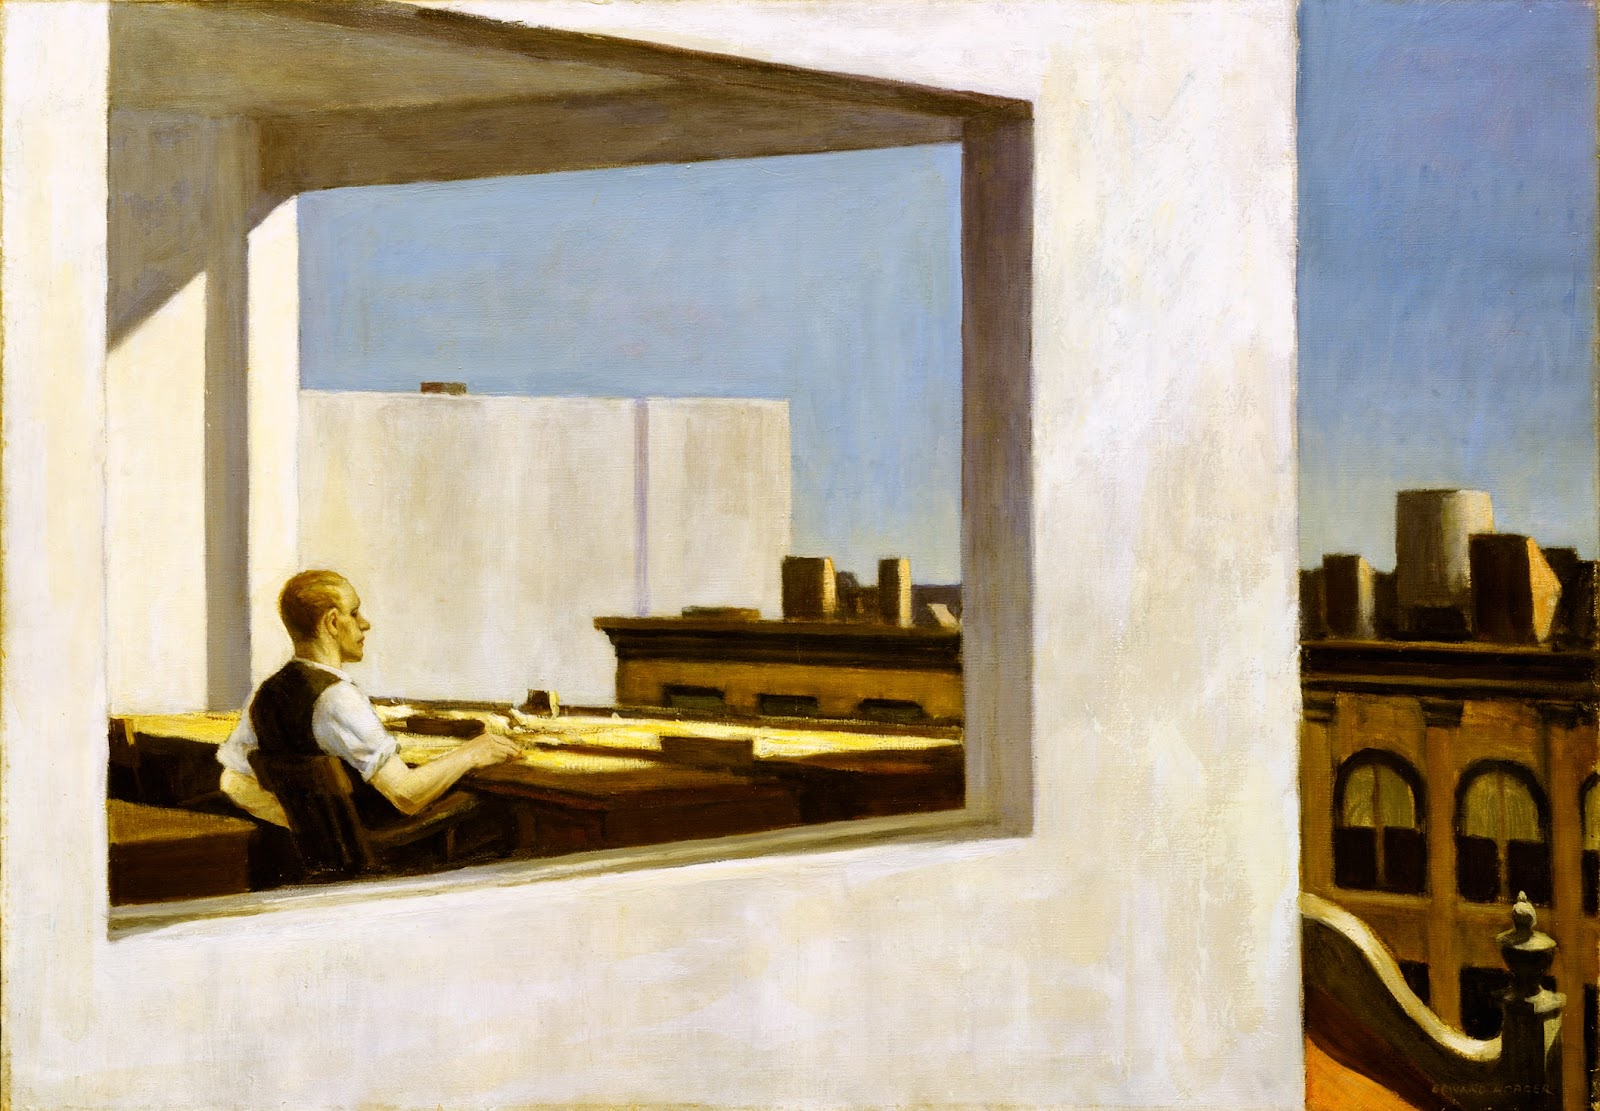 [Edward_Hopper_Office_in_a_Small_City_1953%255B6%255D.jpg]